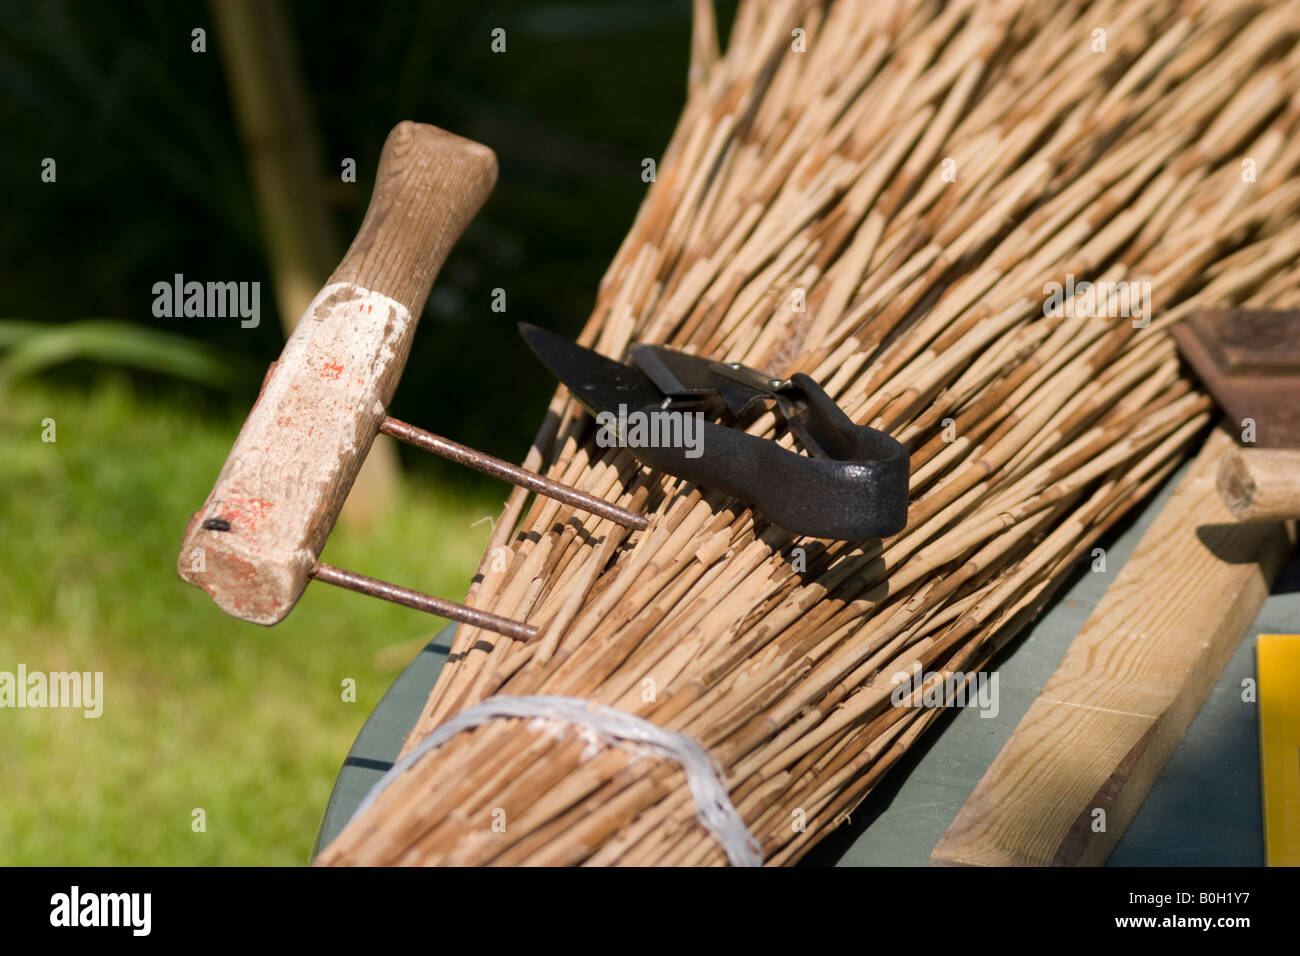 Thatching tools - Stock Image